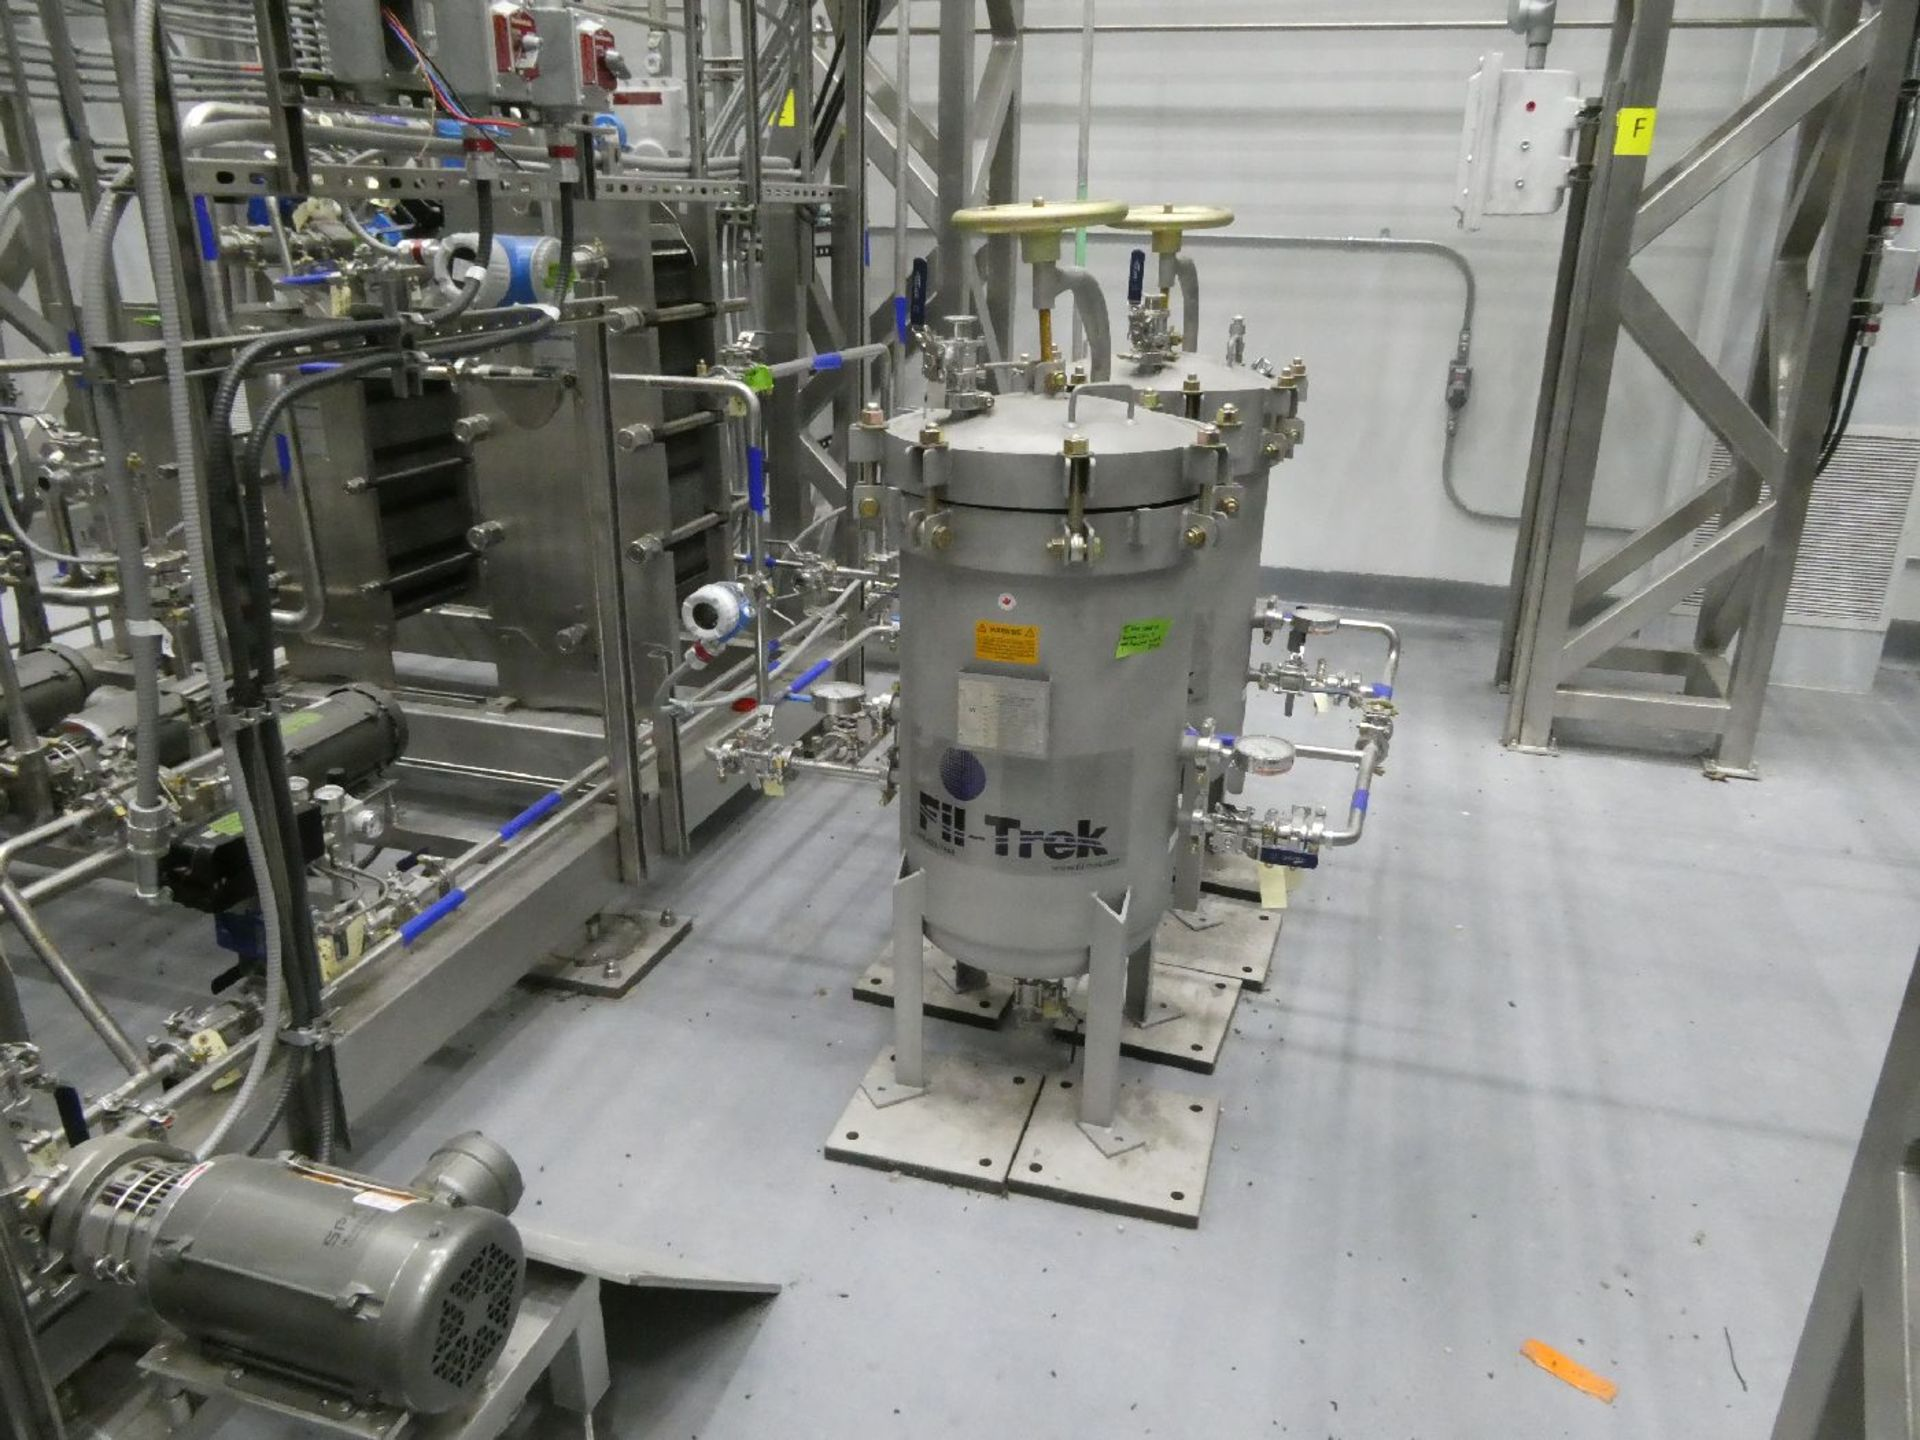 ROTAX Closed Loop Solvent Based Continuous Oil Extraction System - Image 16 of 68